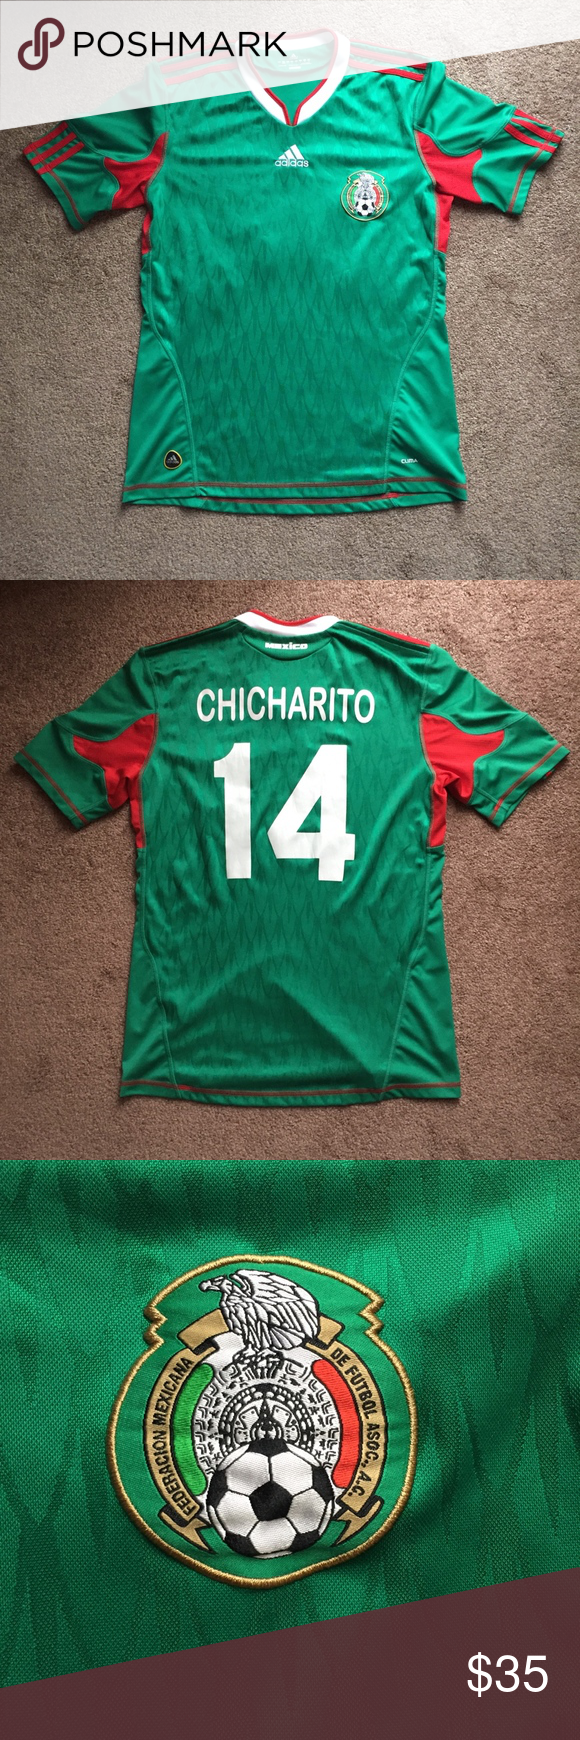 2dfd415c037 Adidas 2010 Mexico National Team Jersey Chicharito Preowned ...